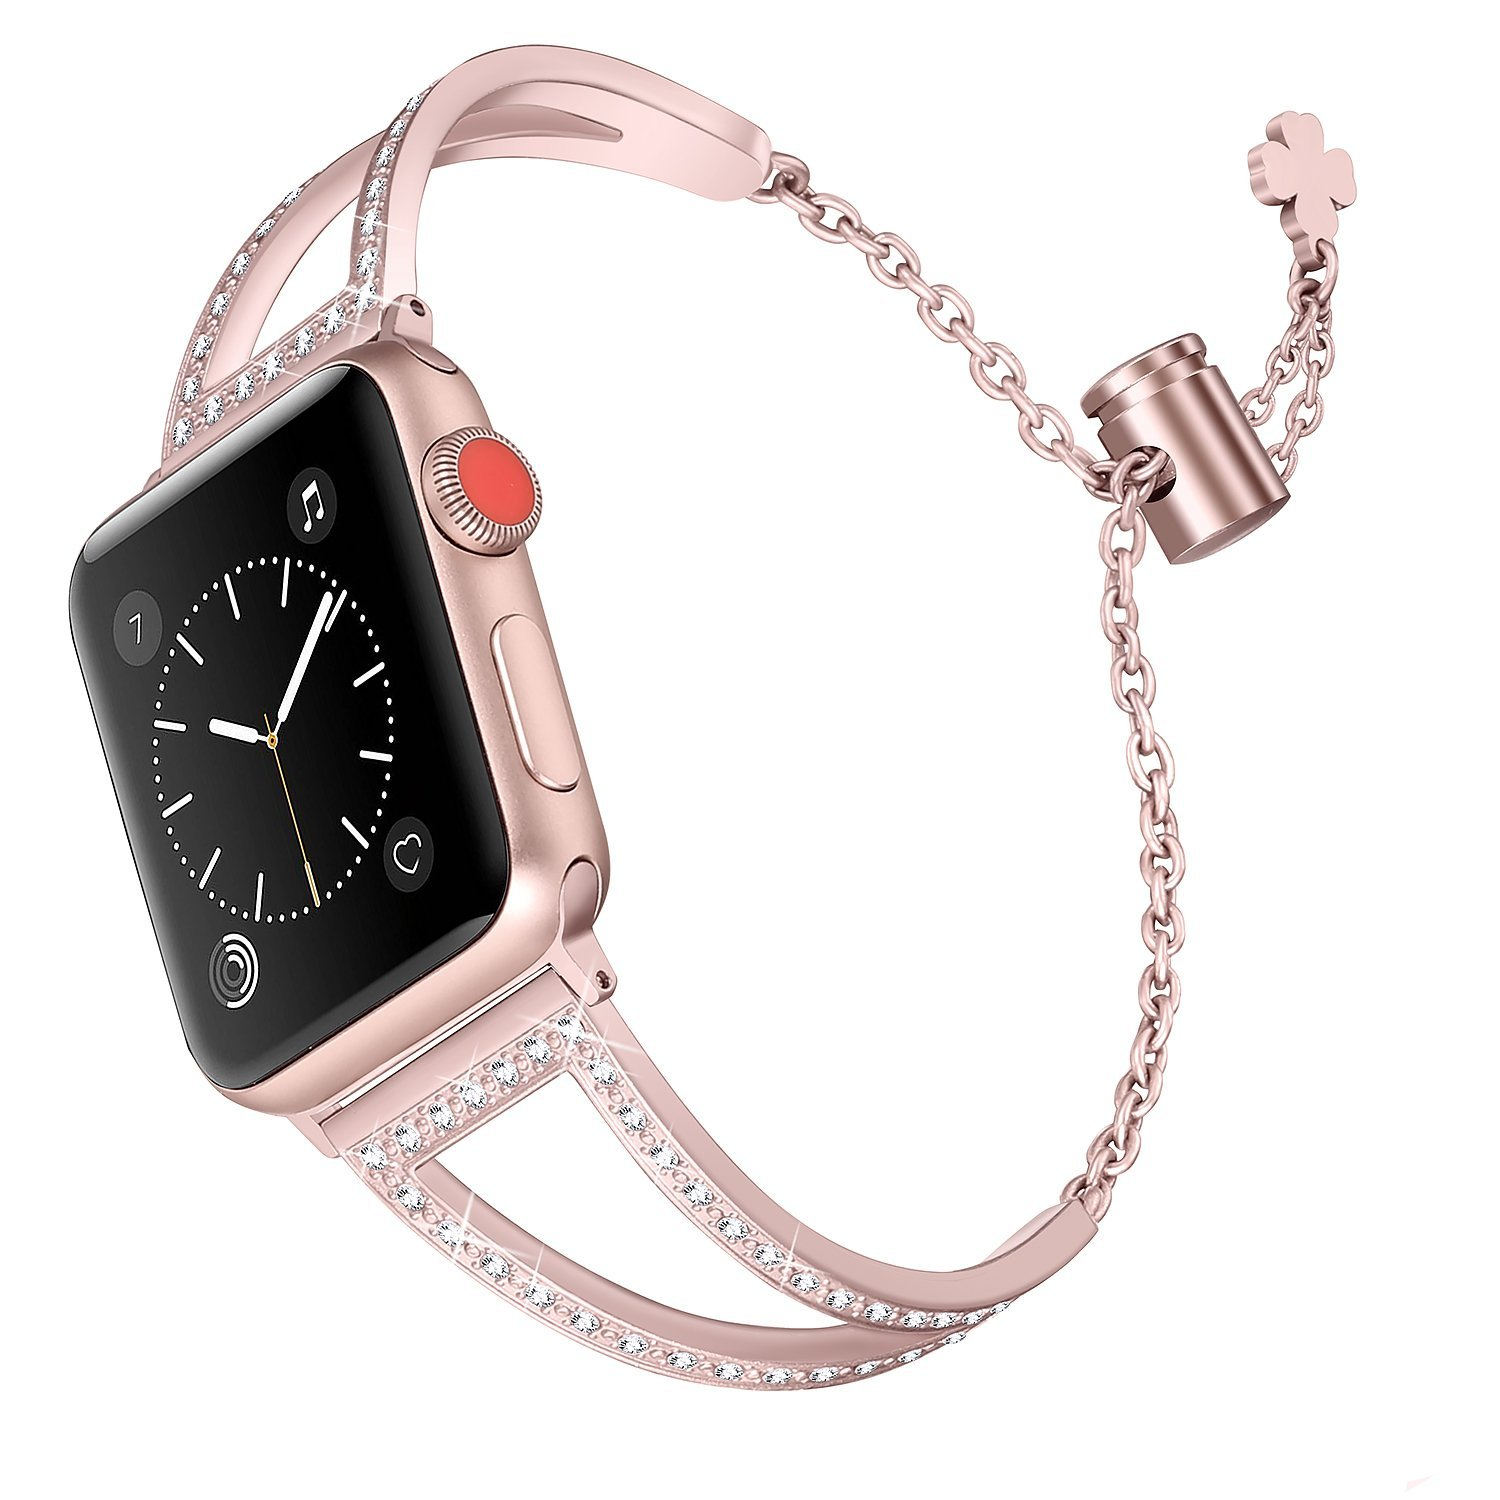 Secbolt Bling Bands Compatible Apple Watch Iwatch Band Series 4 40mm, Series 3/2/1 38mm, Women Stainless Steel Metal Jewelry Bracelet Bangle Wristband, Rose Gold by Secbolt (Image #1)